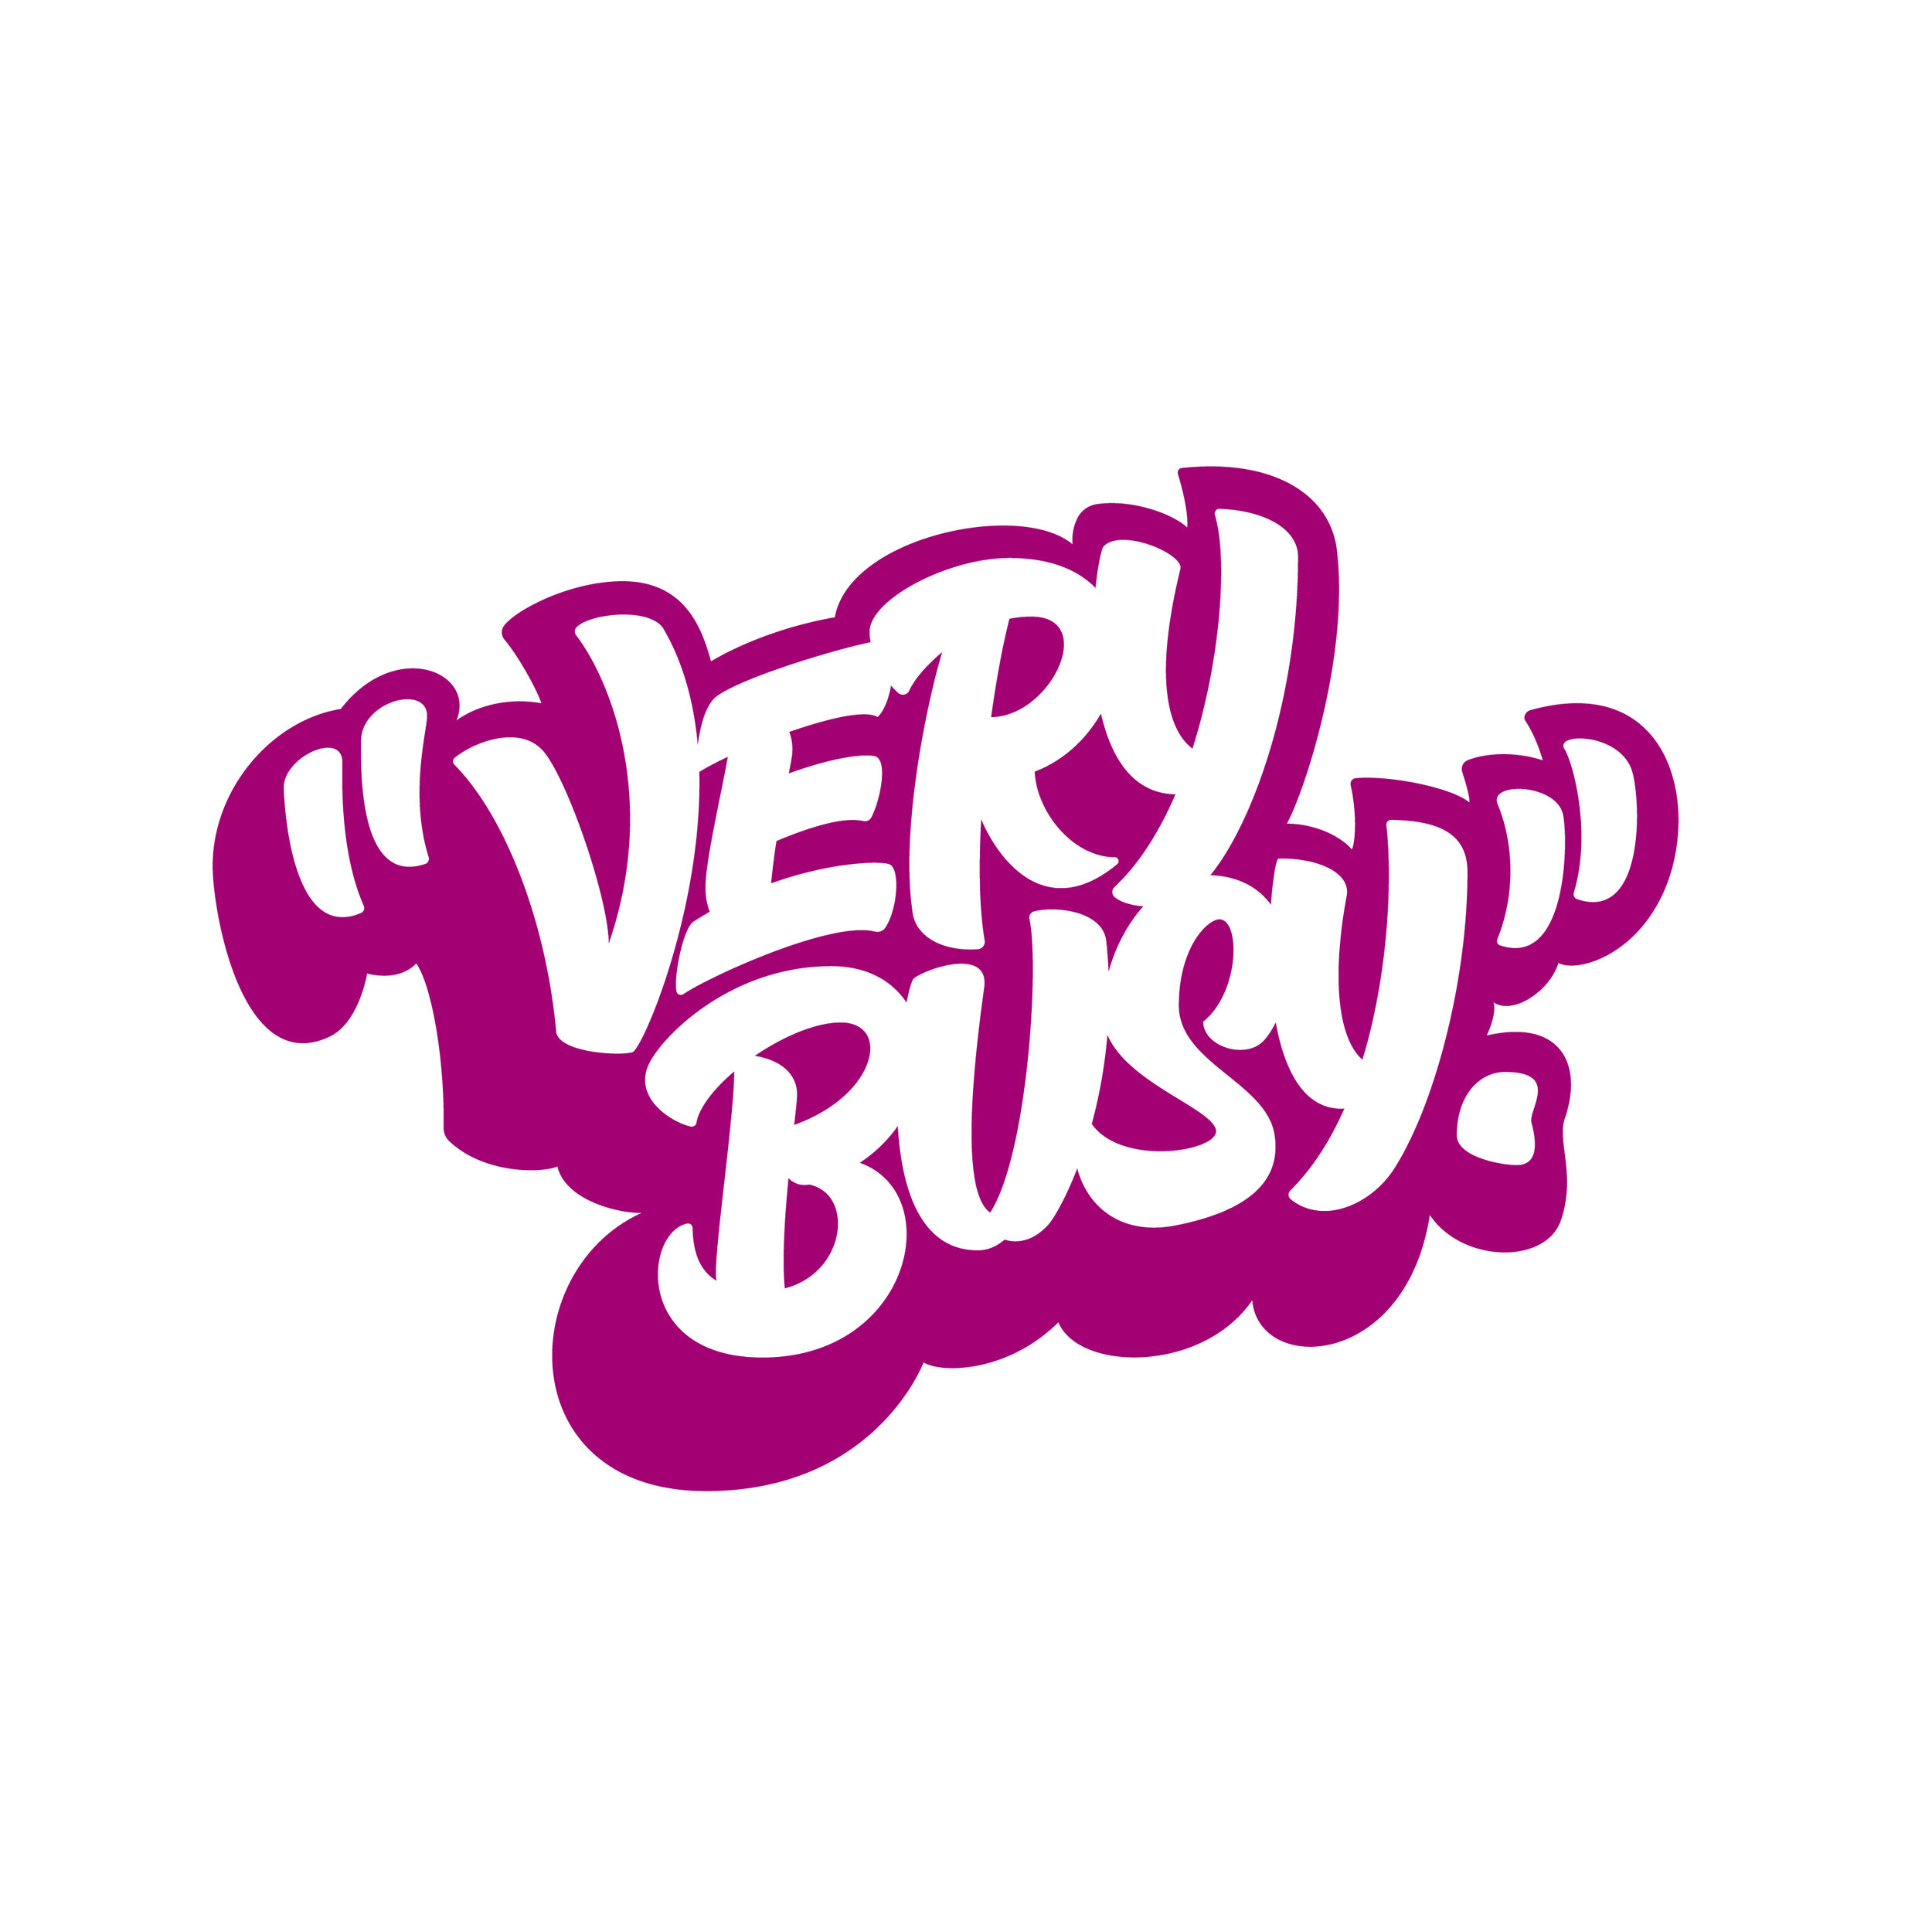 Very Busy - purple